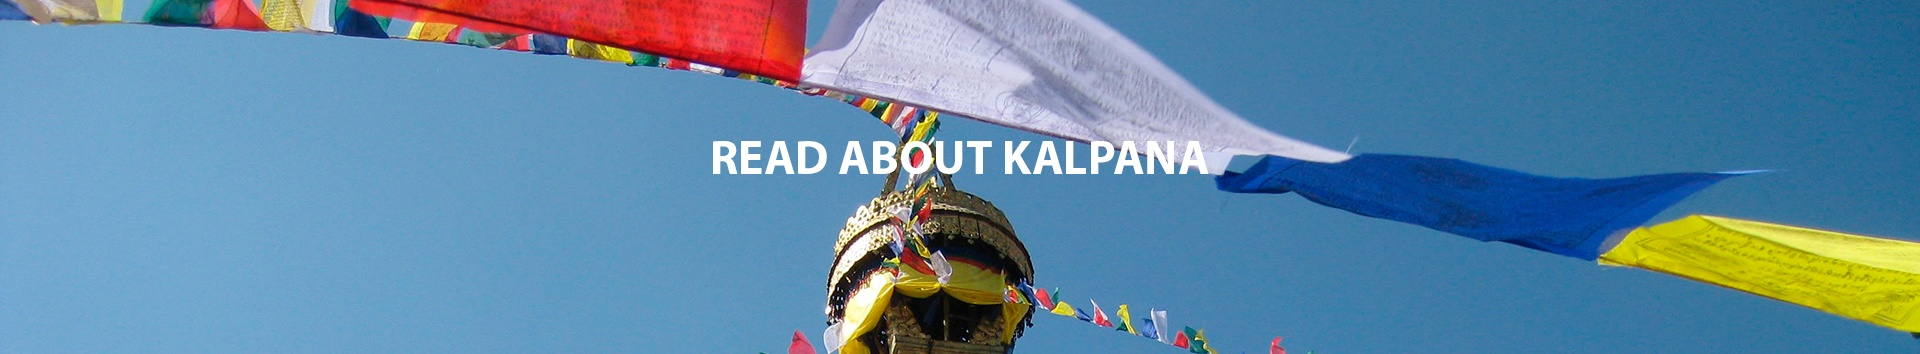 Read About Kalpana